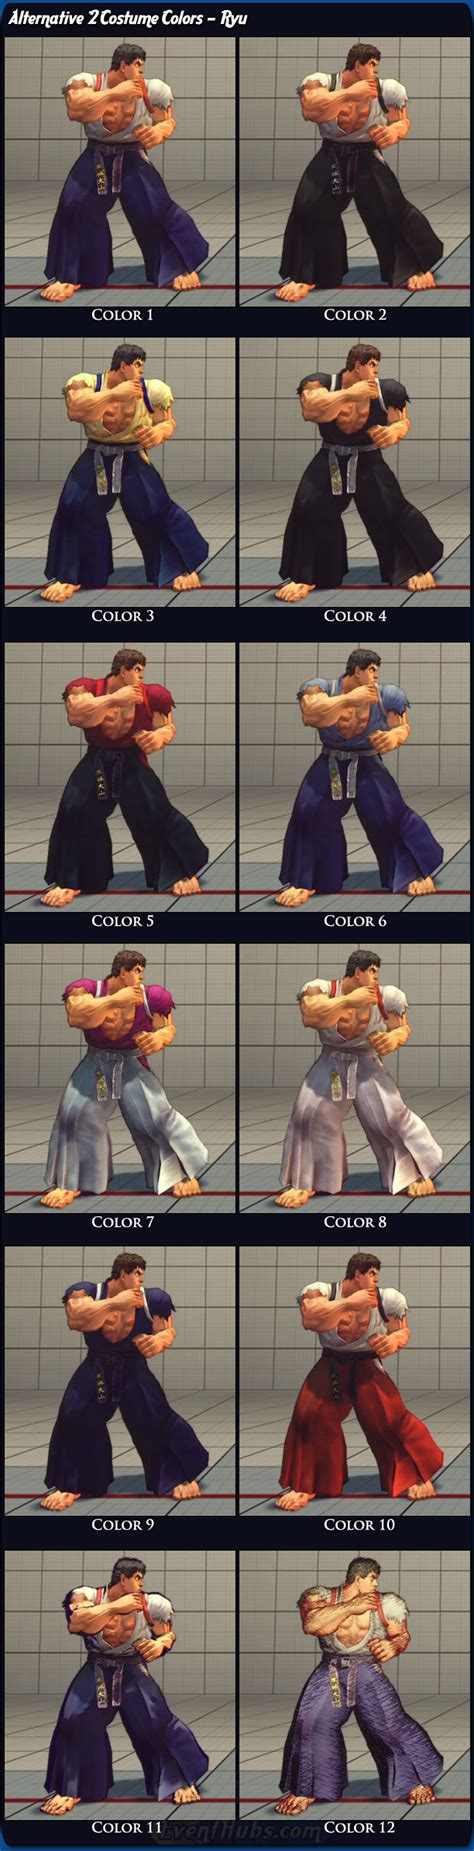 Costume and alternative outfit colors for Ryu in Super